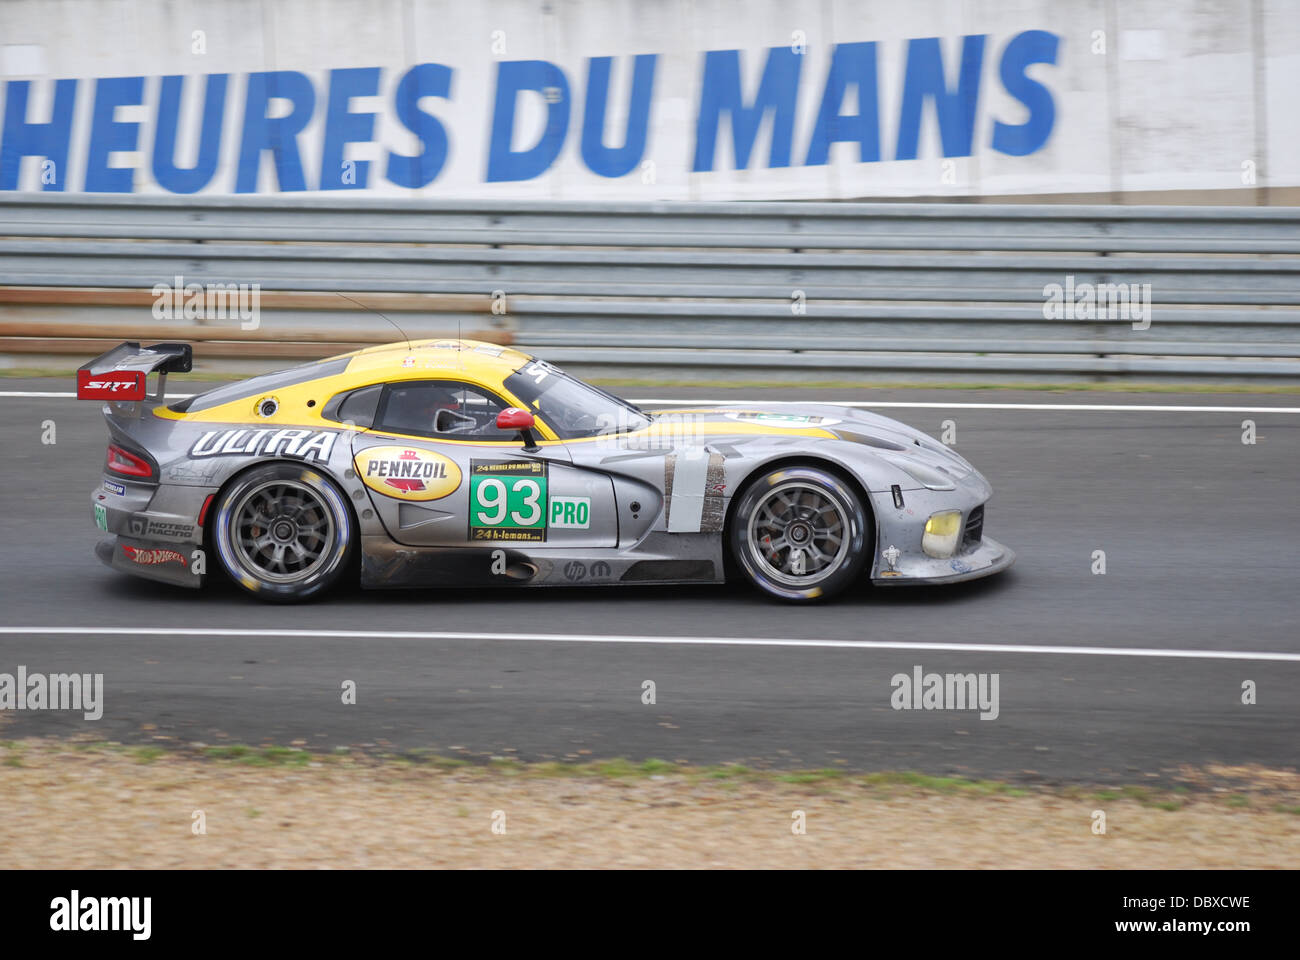 SRT Motorsports Chrysler Dodge Viper #93 of Wittmer, Bomarito & Kendall at the 2013 24 Hours of Le Mans - Stock Image